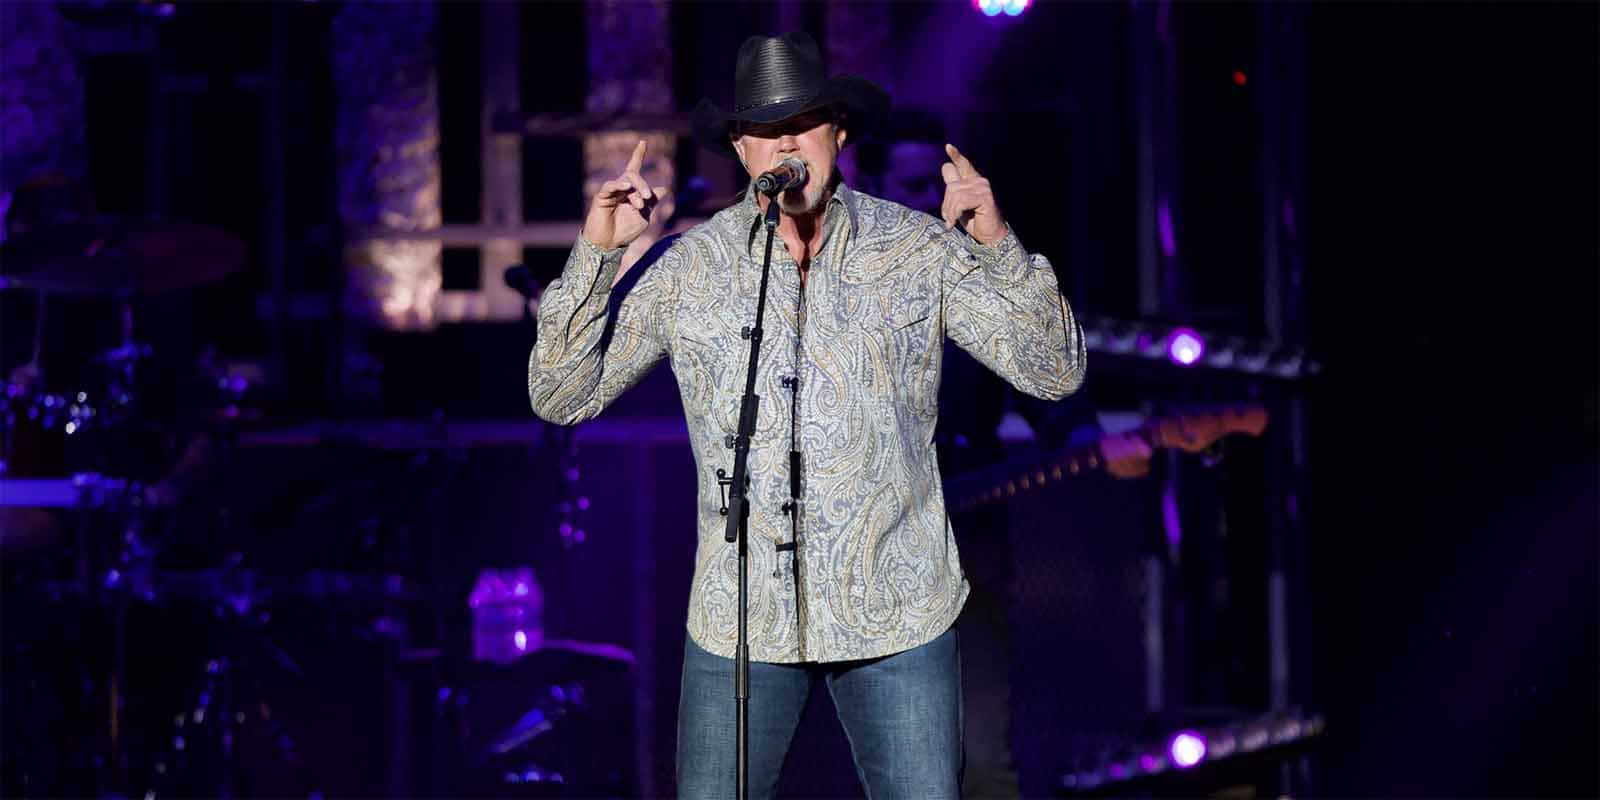 Country Singer Trace Adkins live at the Minnesota State Fair